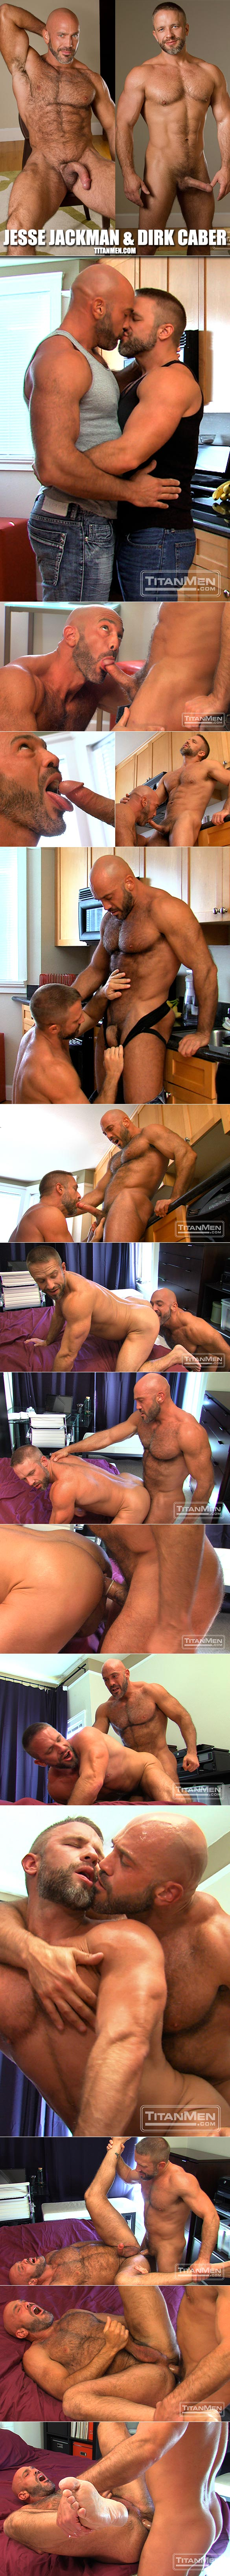 "TitanMen: Muscle hunks Jesse Jackman and Dirk Caber bang each other in ""Extra Firm"""